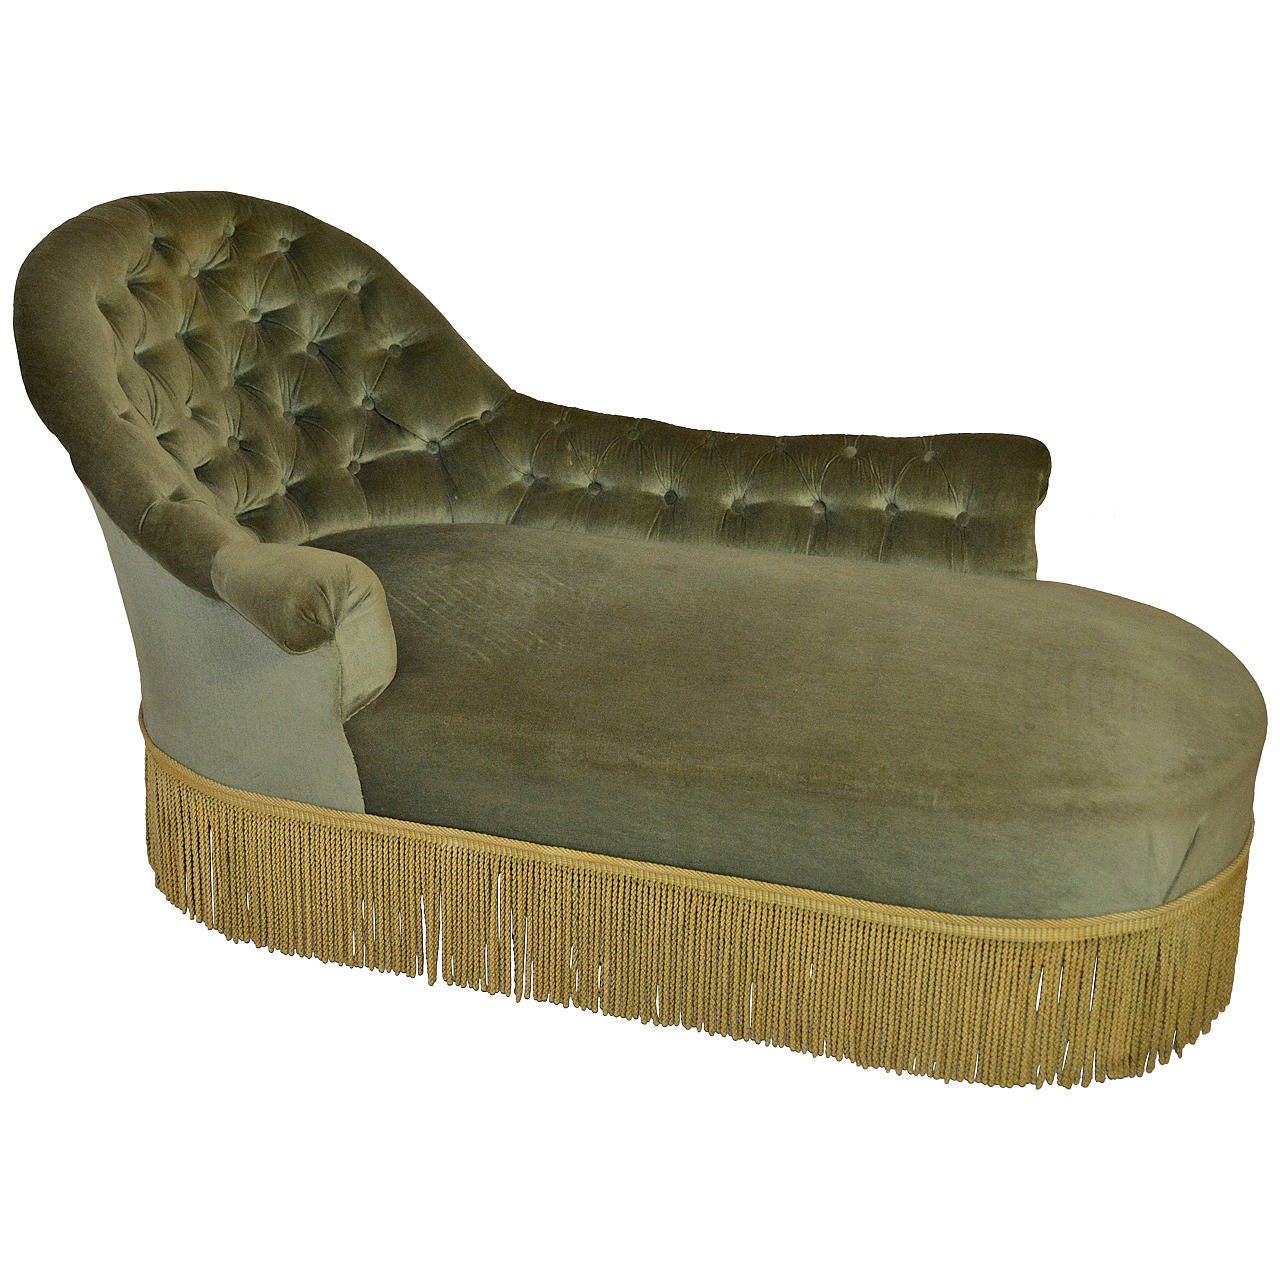 19th century tufted chaise for sale at 1stdibs. Black Bedroom Furniture Sets. Home Design Ideas